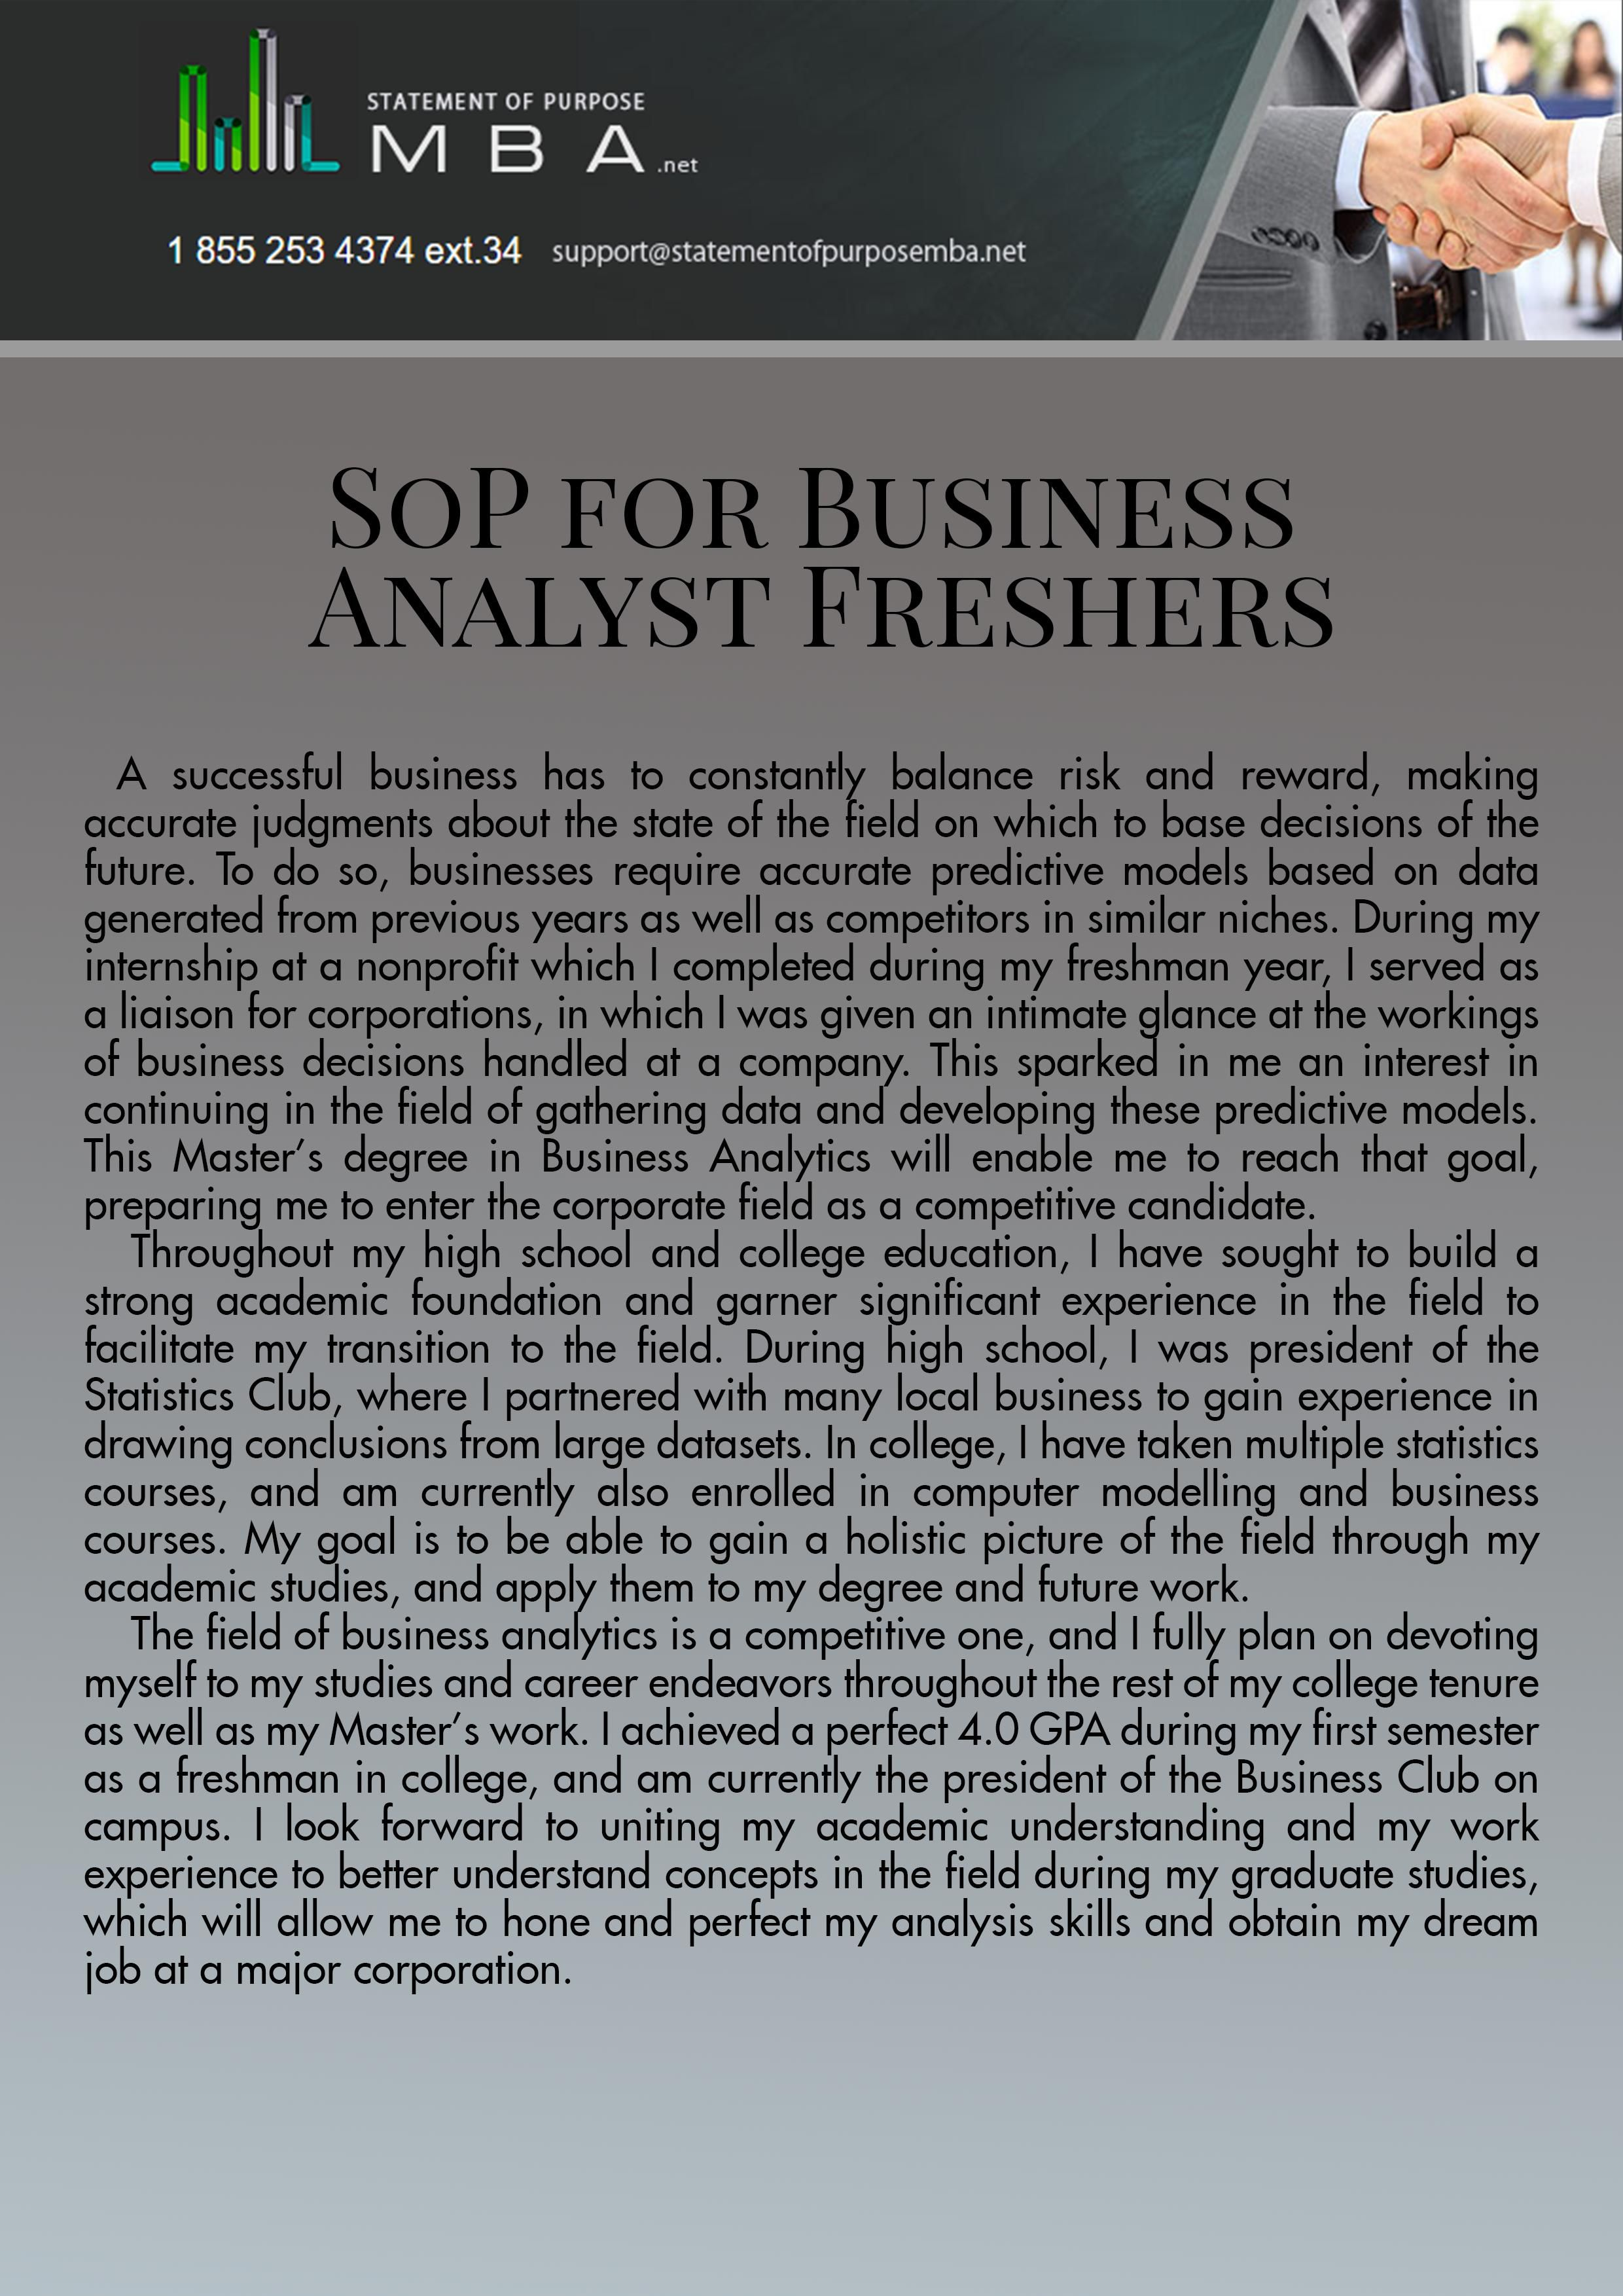 This Sop For Ms In Business Analytics For Freshers Can Get Your